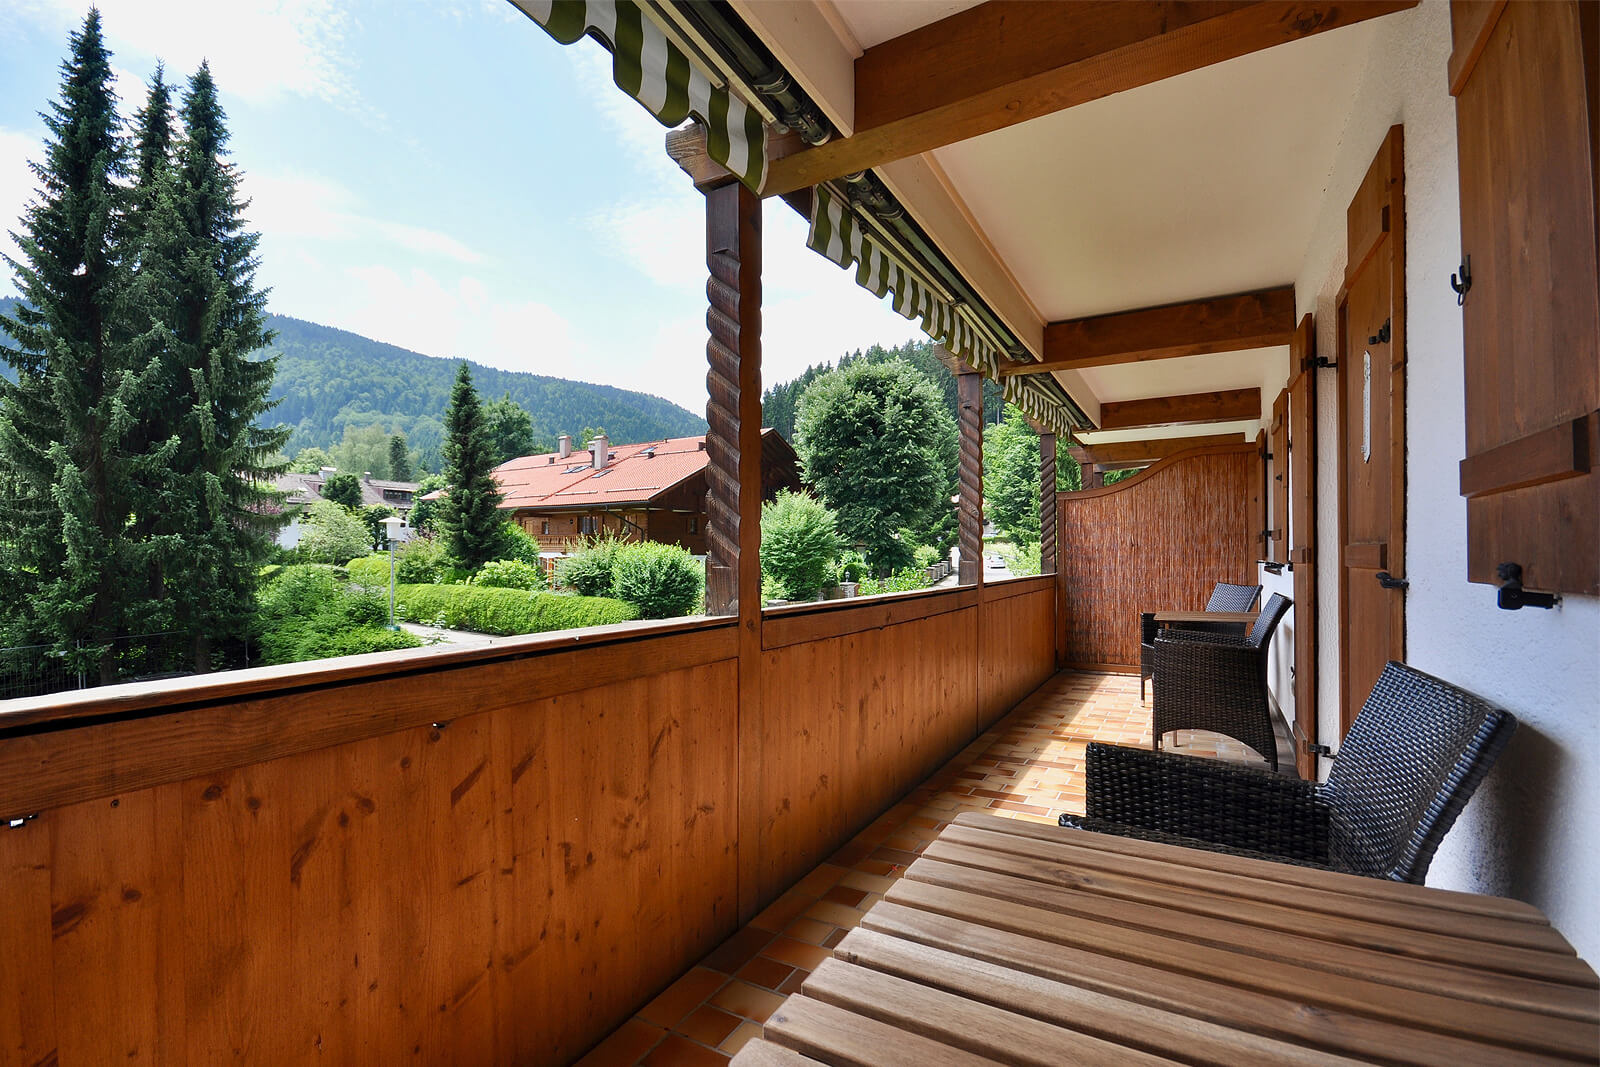 Eco Landhaus, Bad Wiessee, Germany | small luxury hotels, boutique hotels